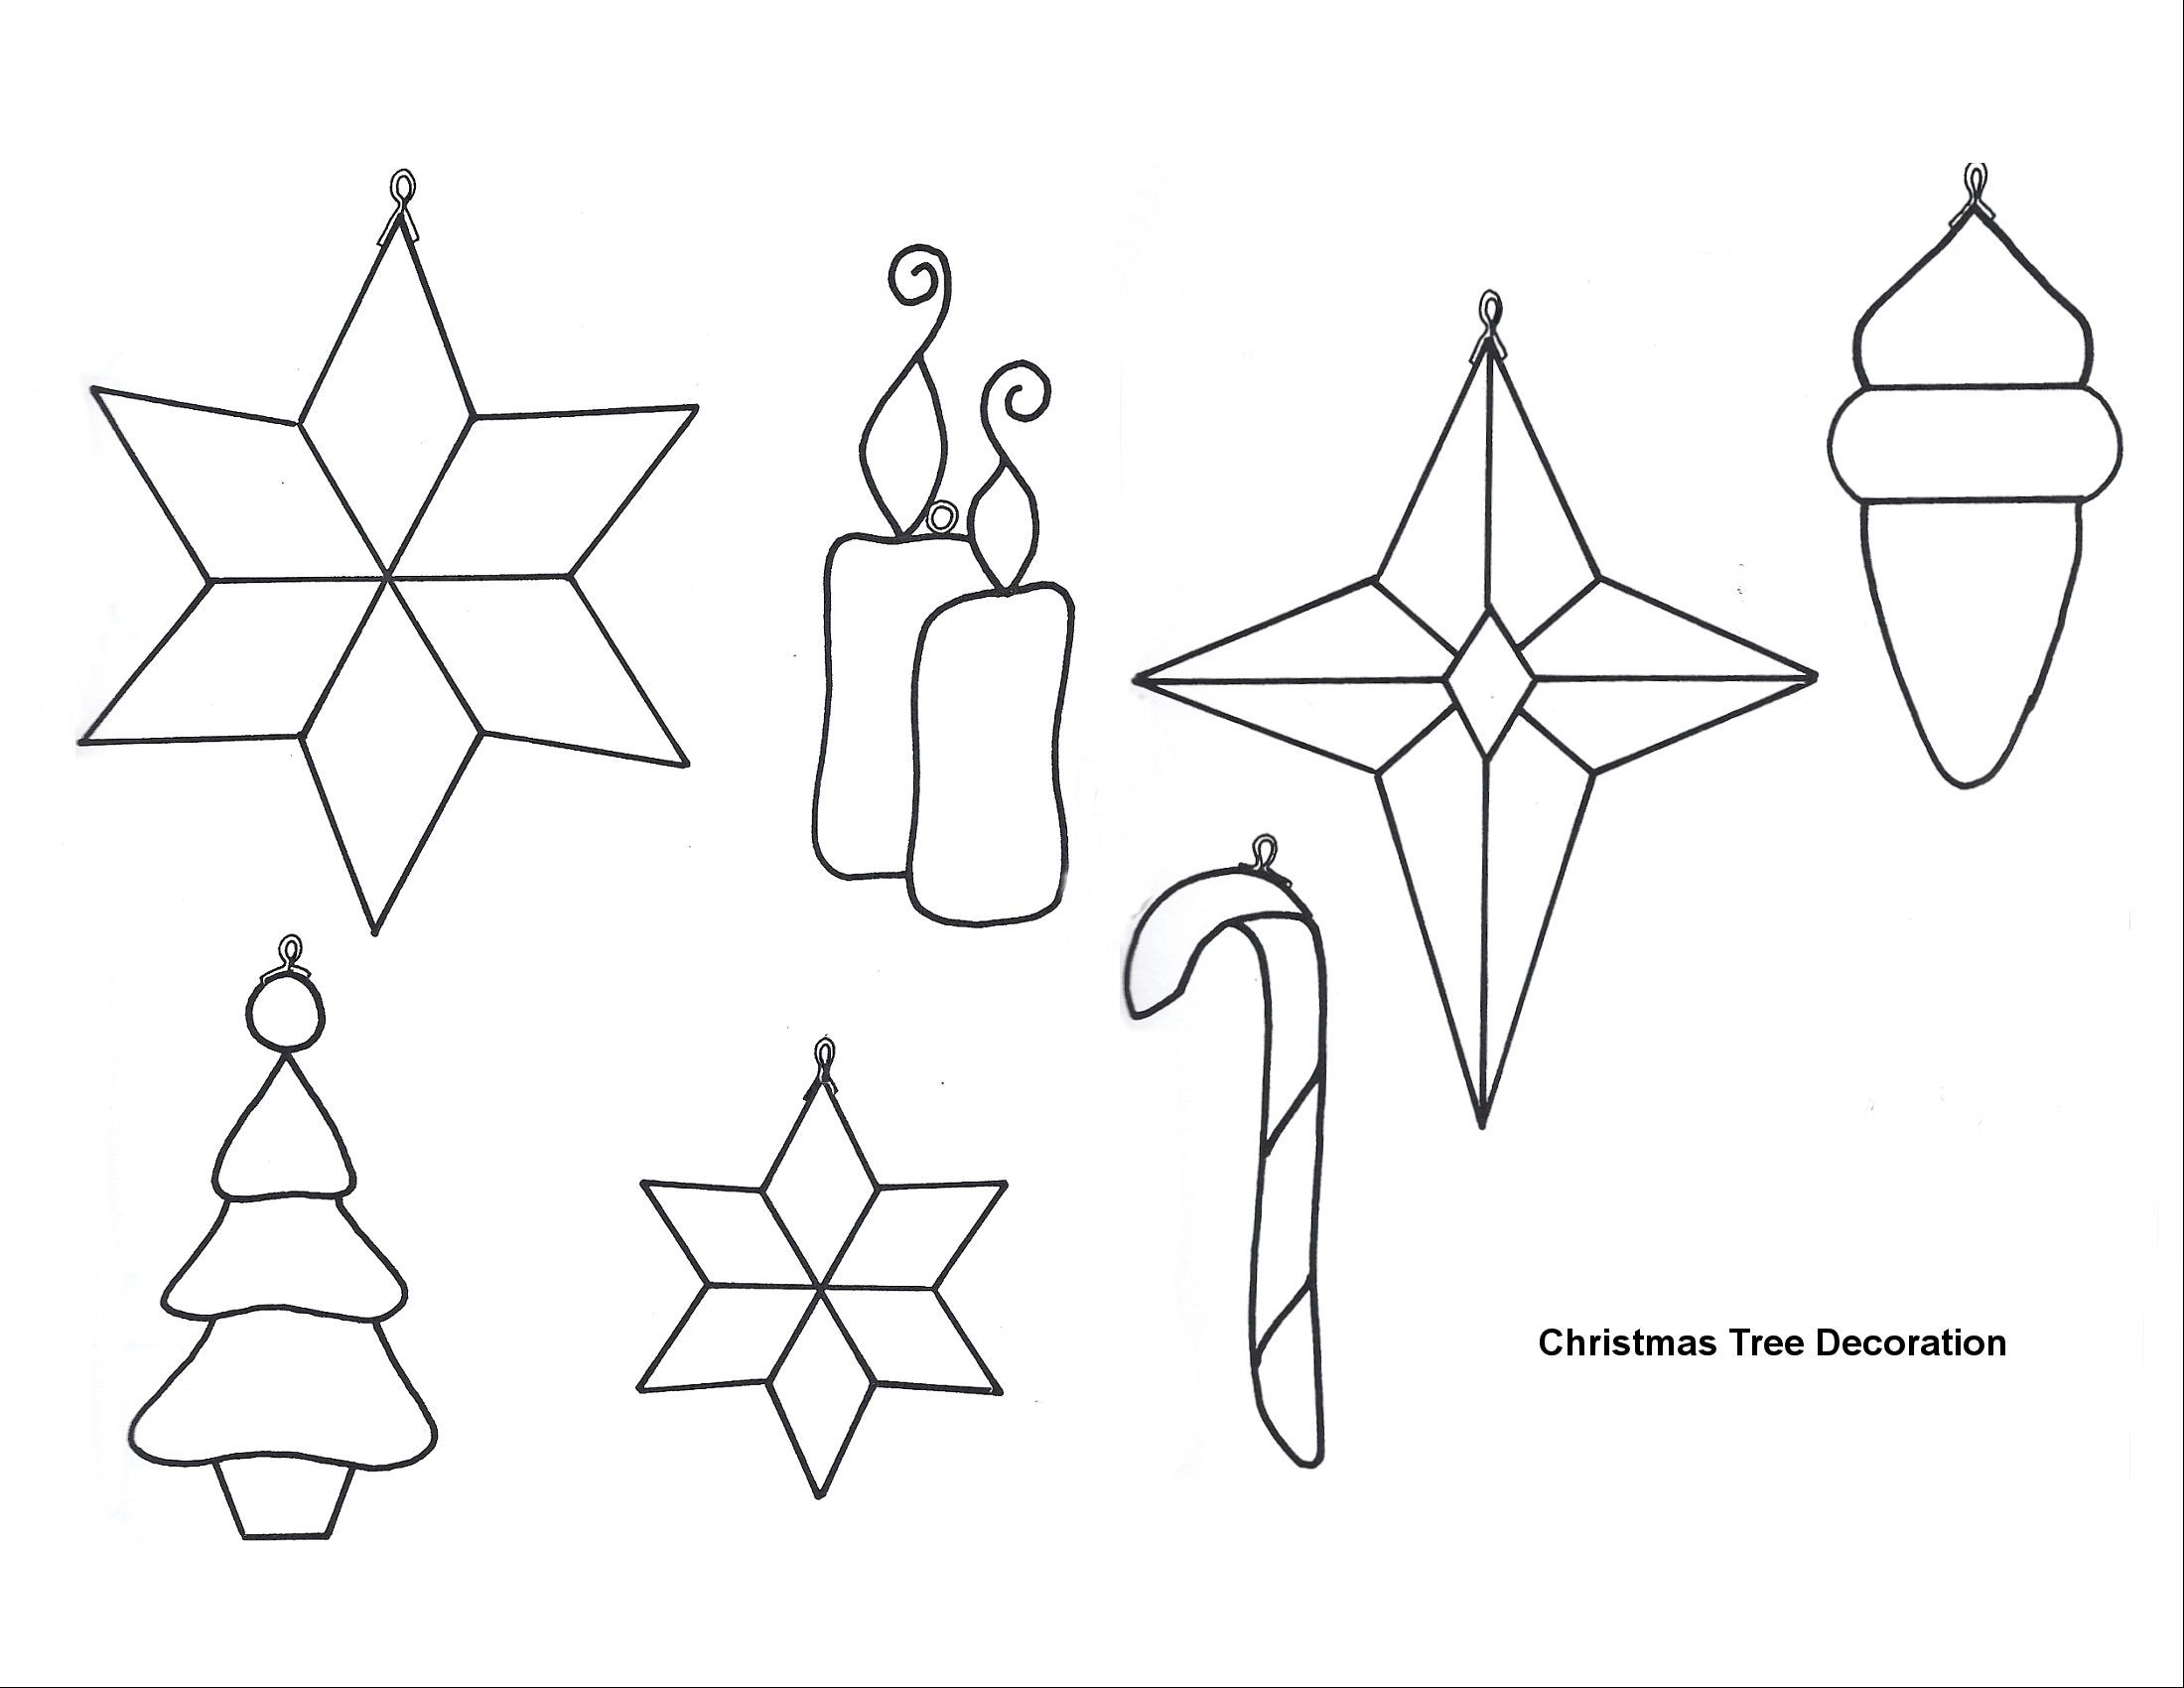 Free Printable Papercraft Templates. Felt Christmas Patterns - Free Printable Stained Glass Patterns